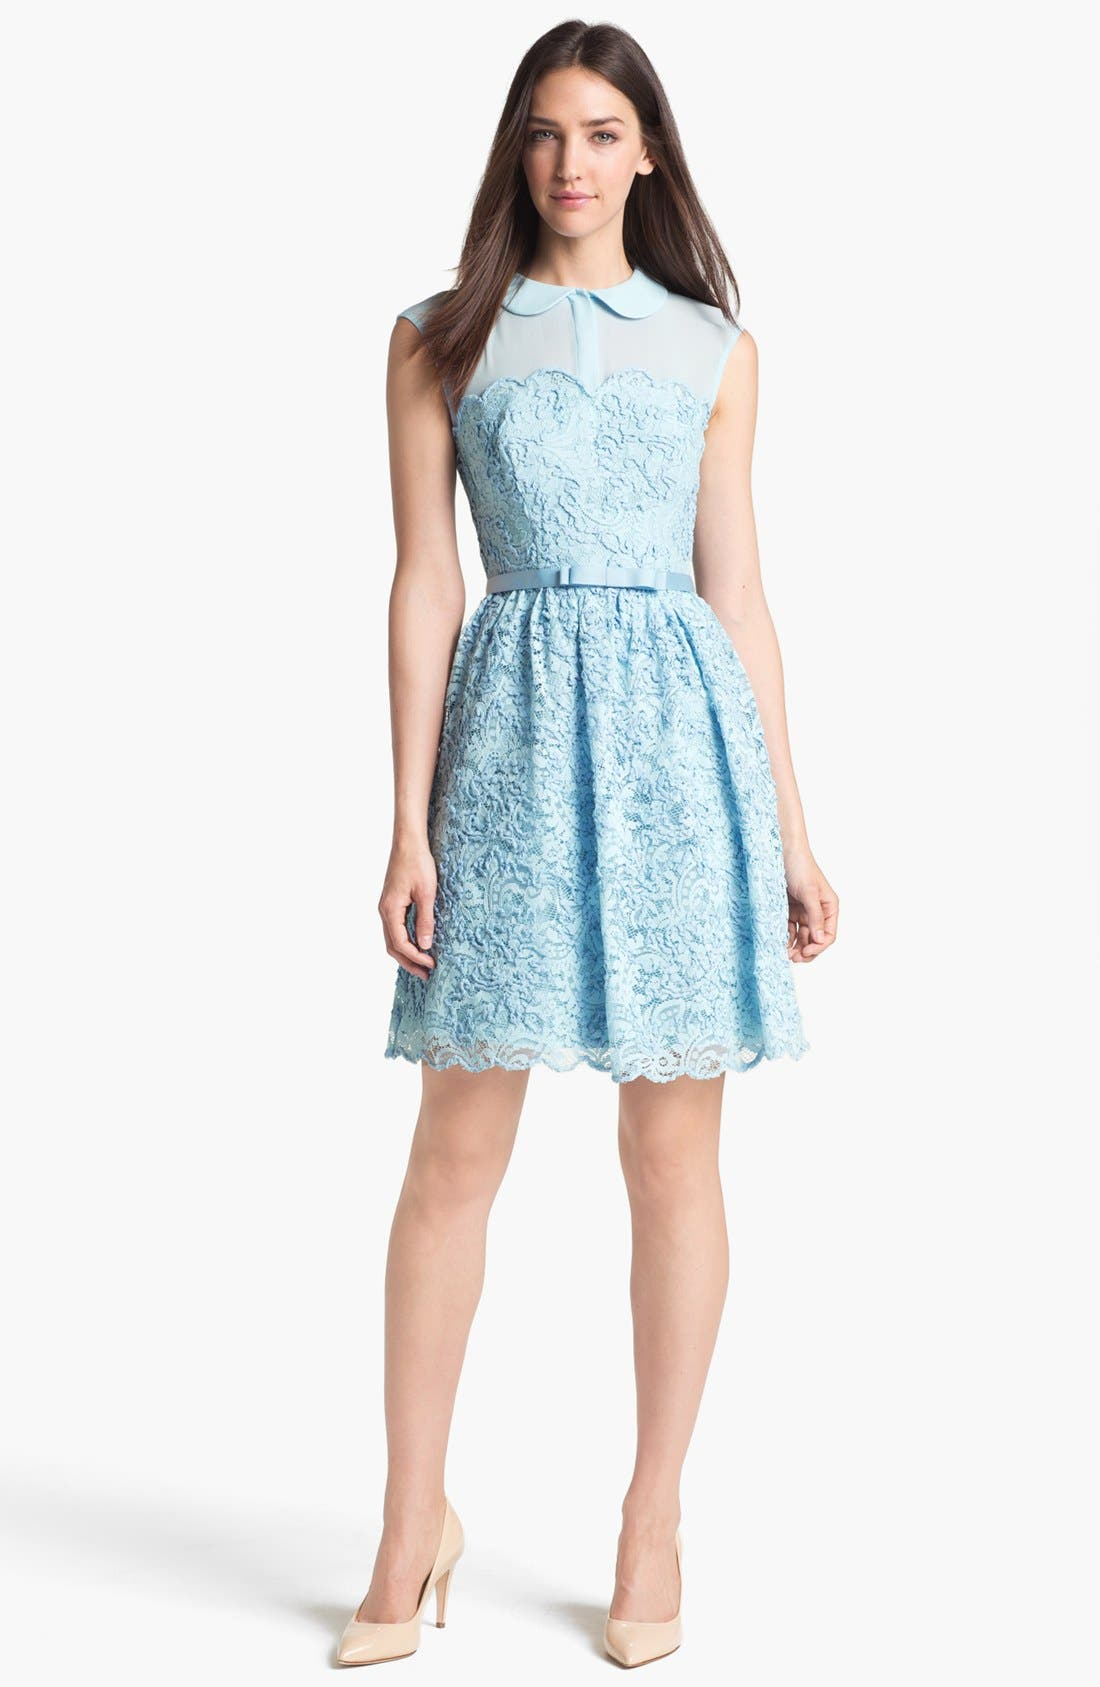 Alternate Image 1 Selected - Ted Baker London Lace Fit & Flare Dress (Online Only)